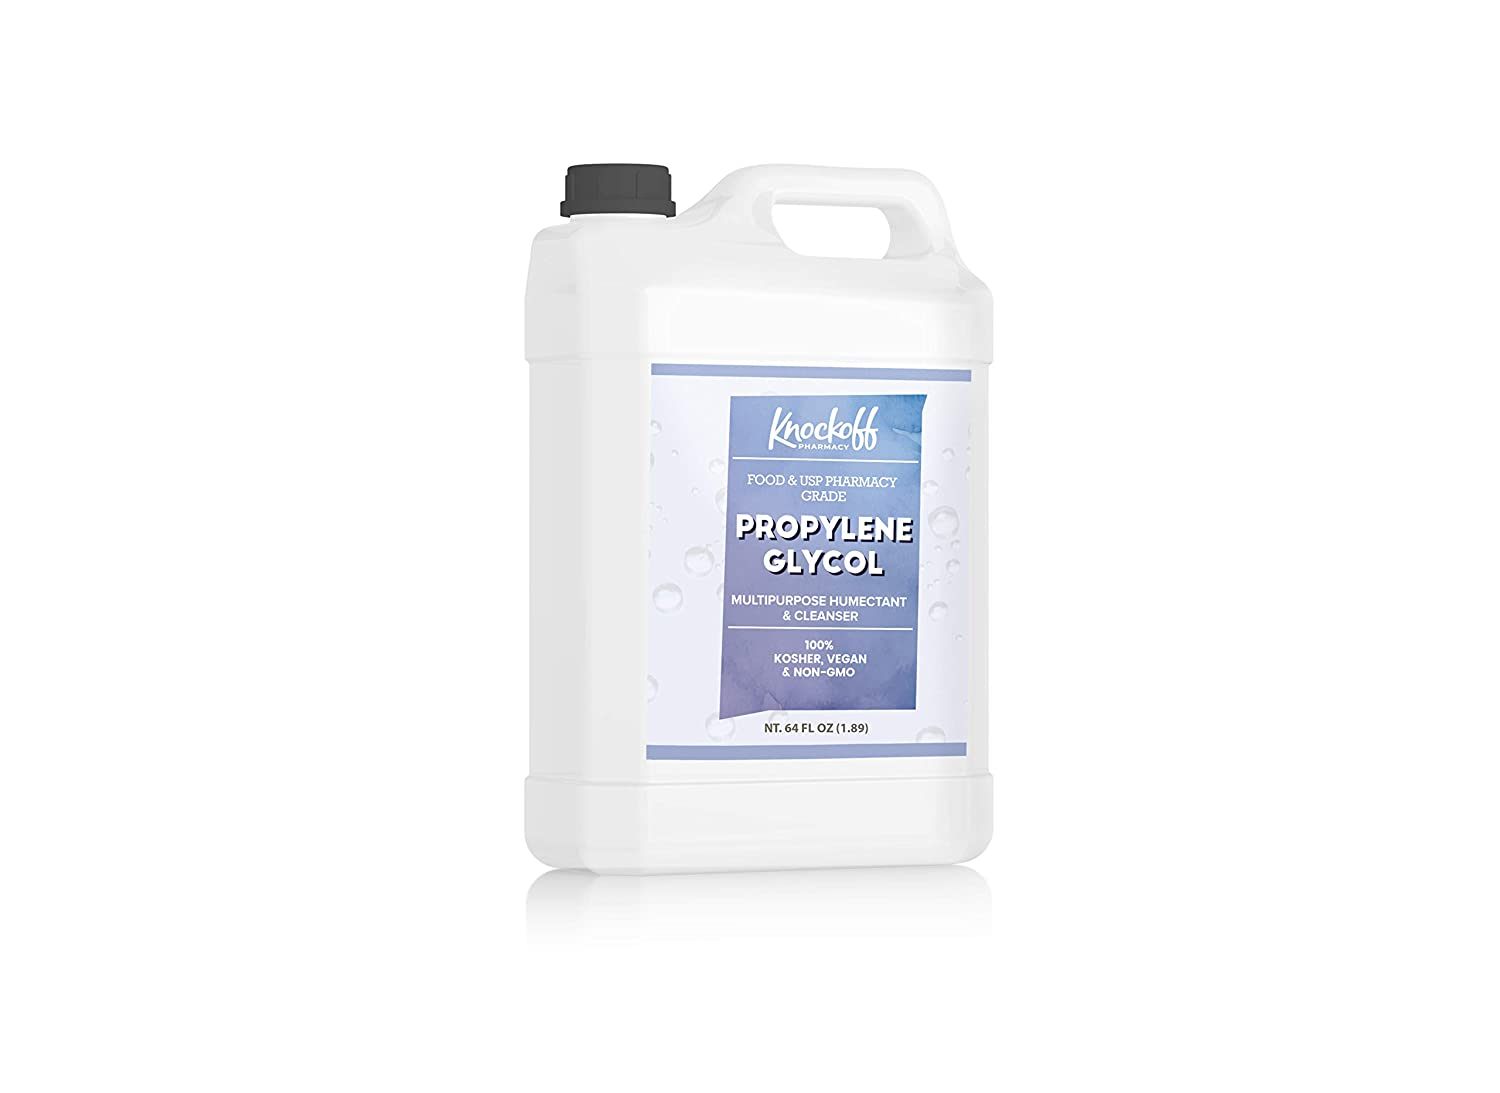 Propylene Glycol Half Gallon (64 oz.) by Knock Off Pharmacy, 100% Pure, Food & Pharmaceutical Grade, Hypoallergenic Moisturizer & Skin Cleanser